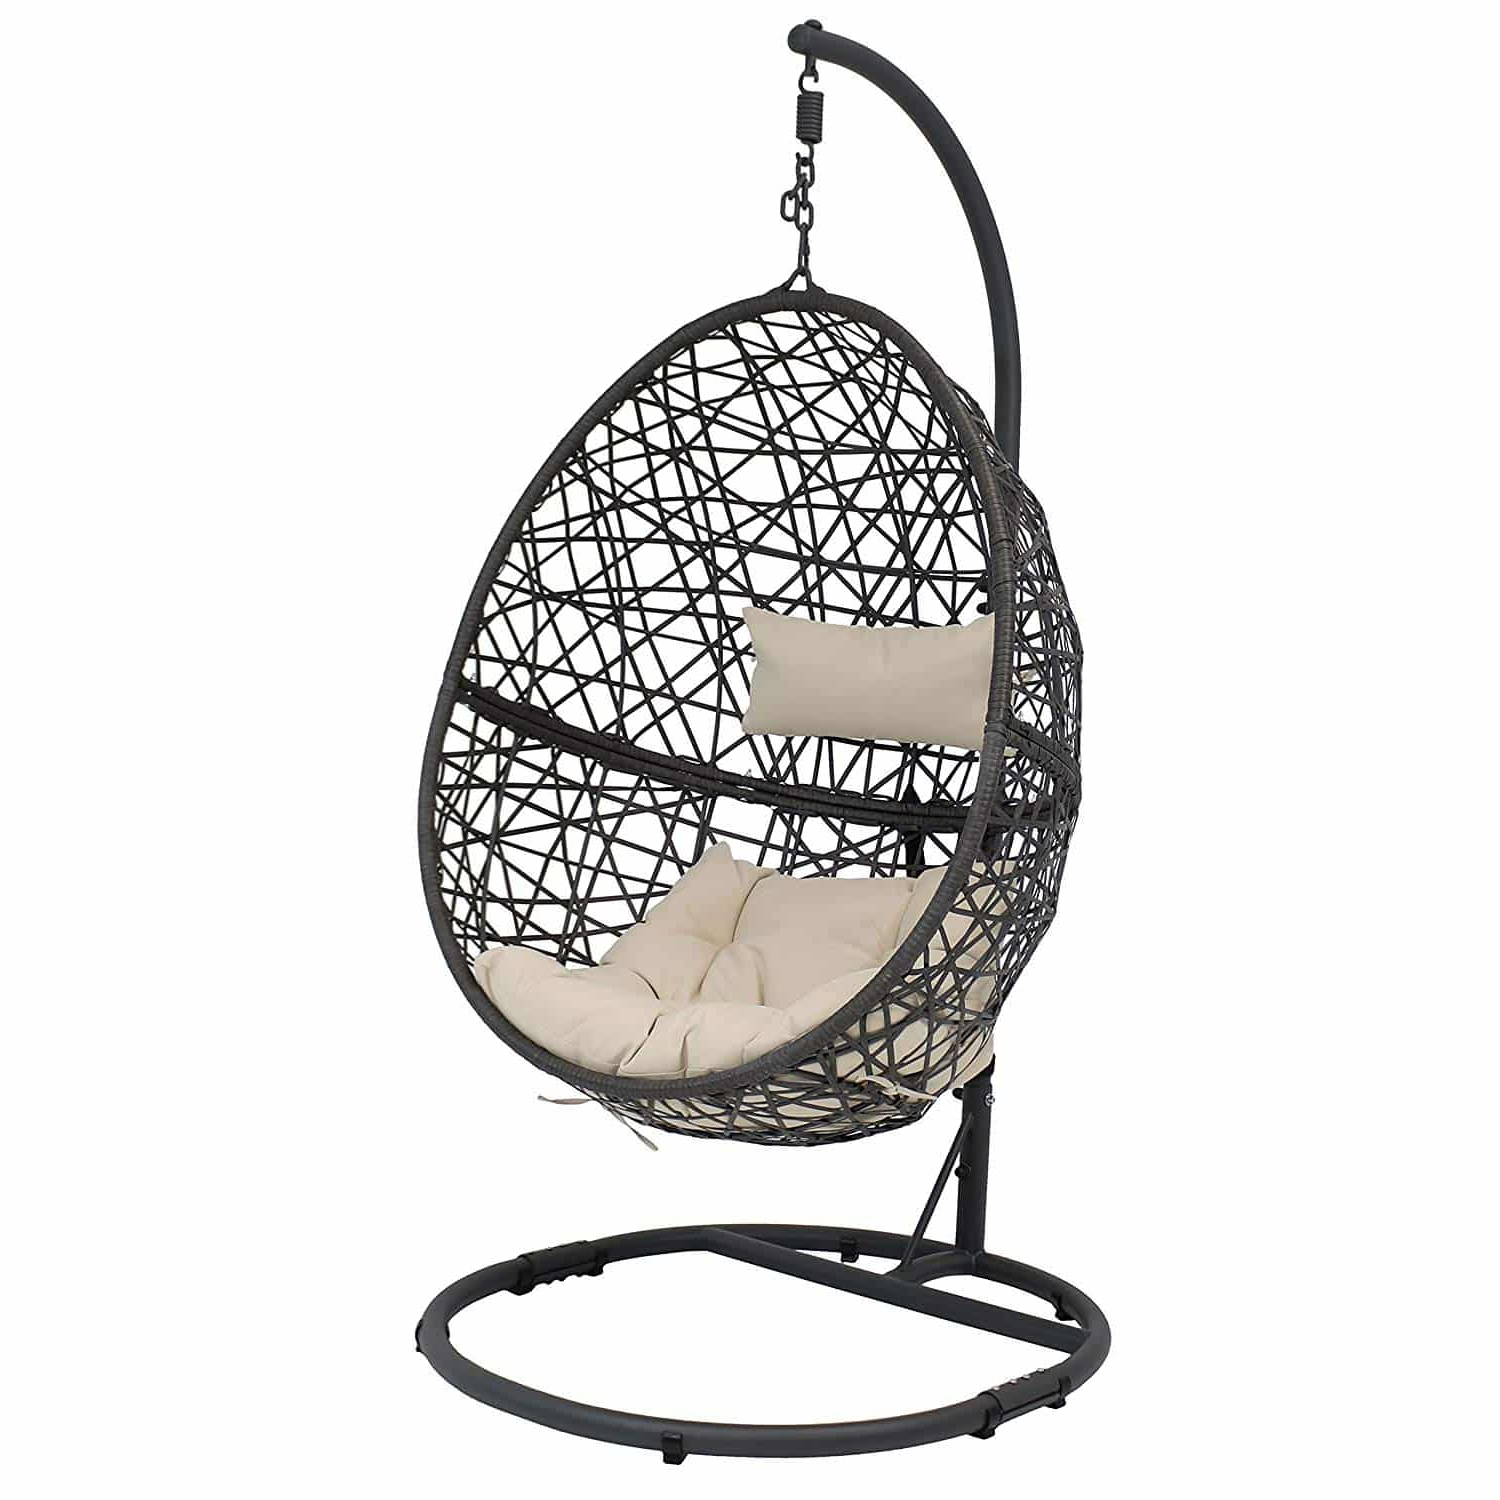 Outdoor Wicker Plastic Tear Porch Swings With Stand Throughout Most Current 10 Best Egg Chairs Of 2020 (review & Guide) – Thebeastreviews (View 28 of 30)